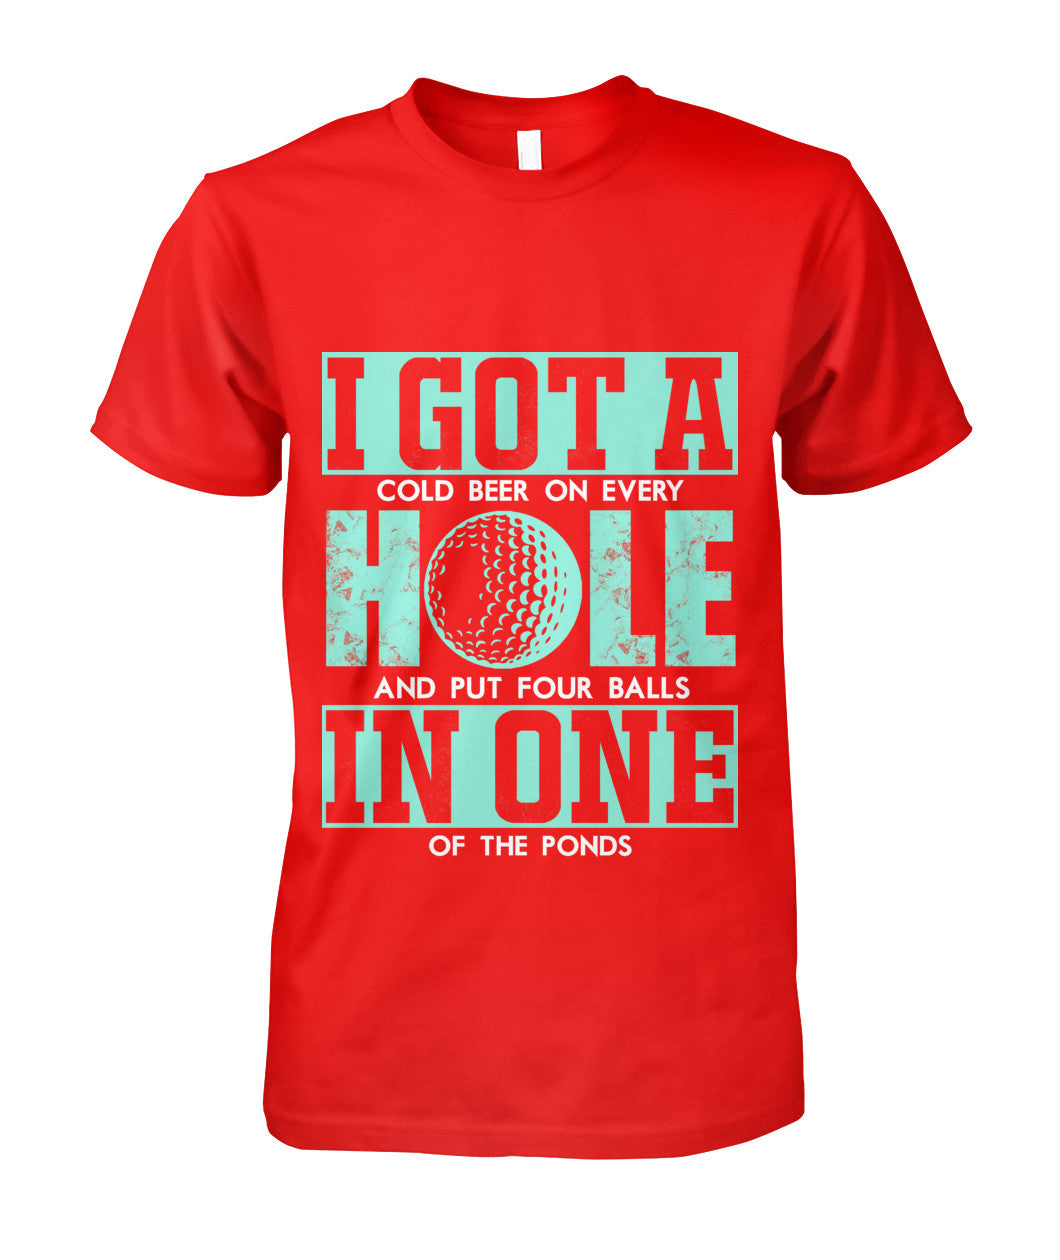 I got a hole in one shirt Unisex Cotton Tee